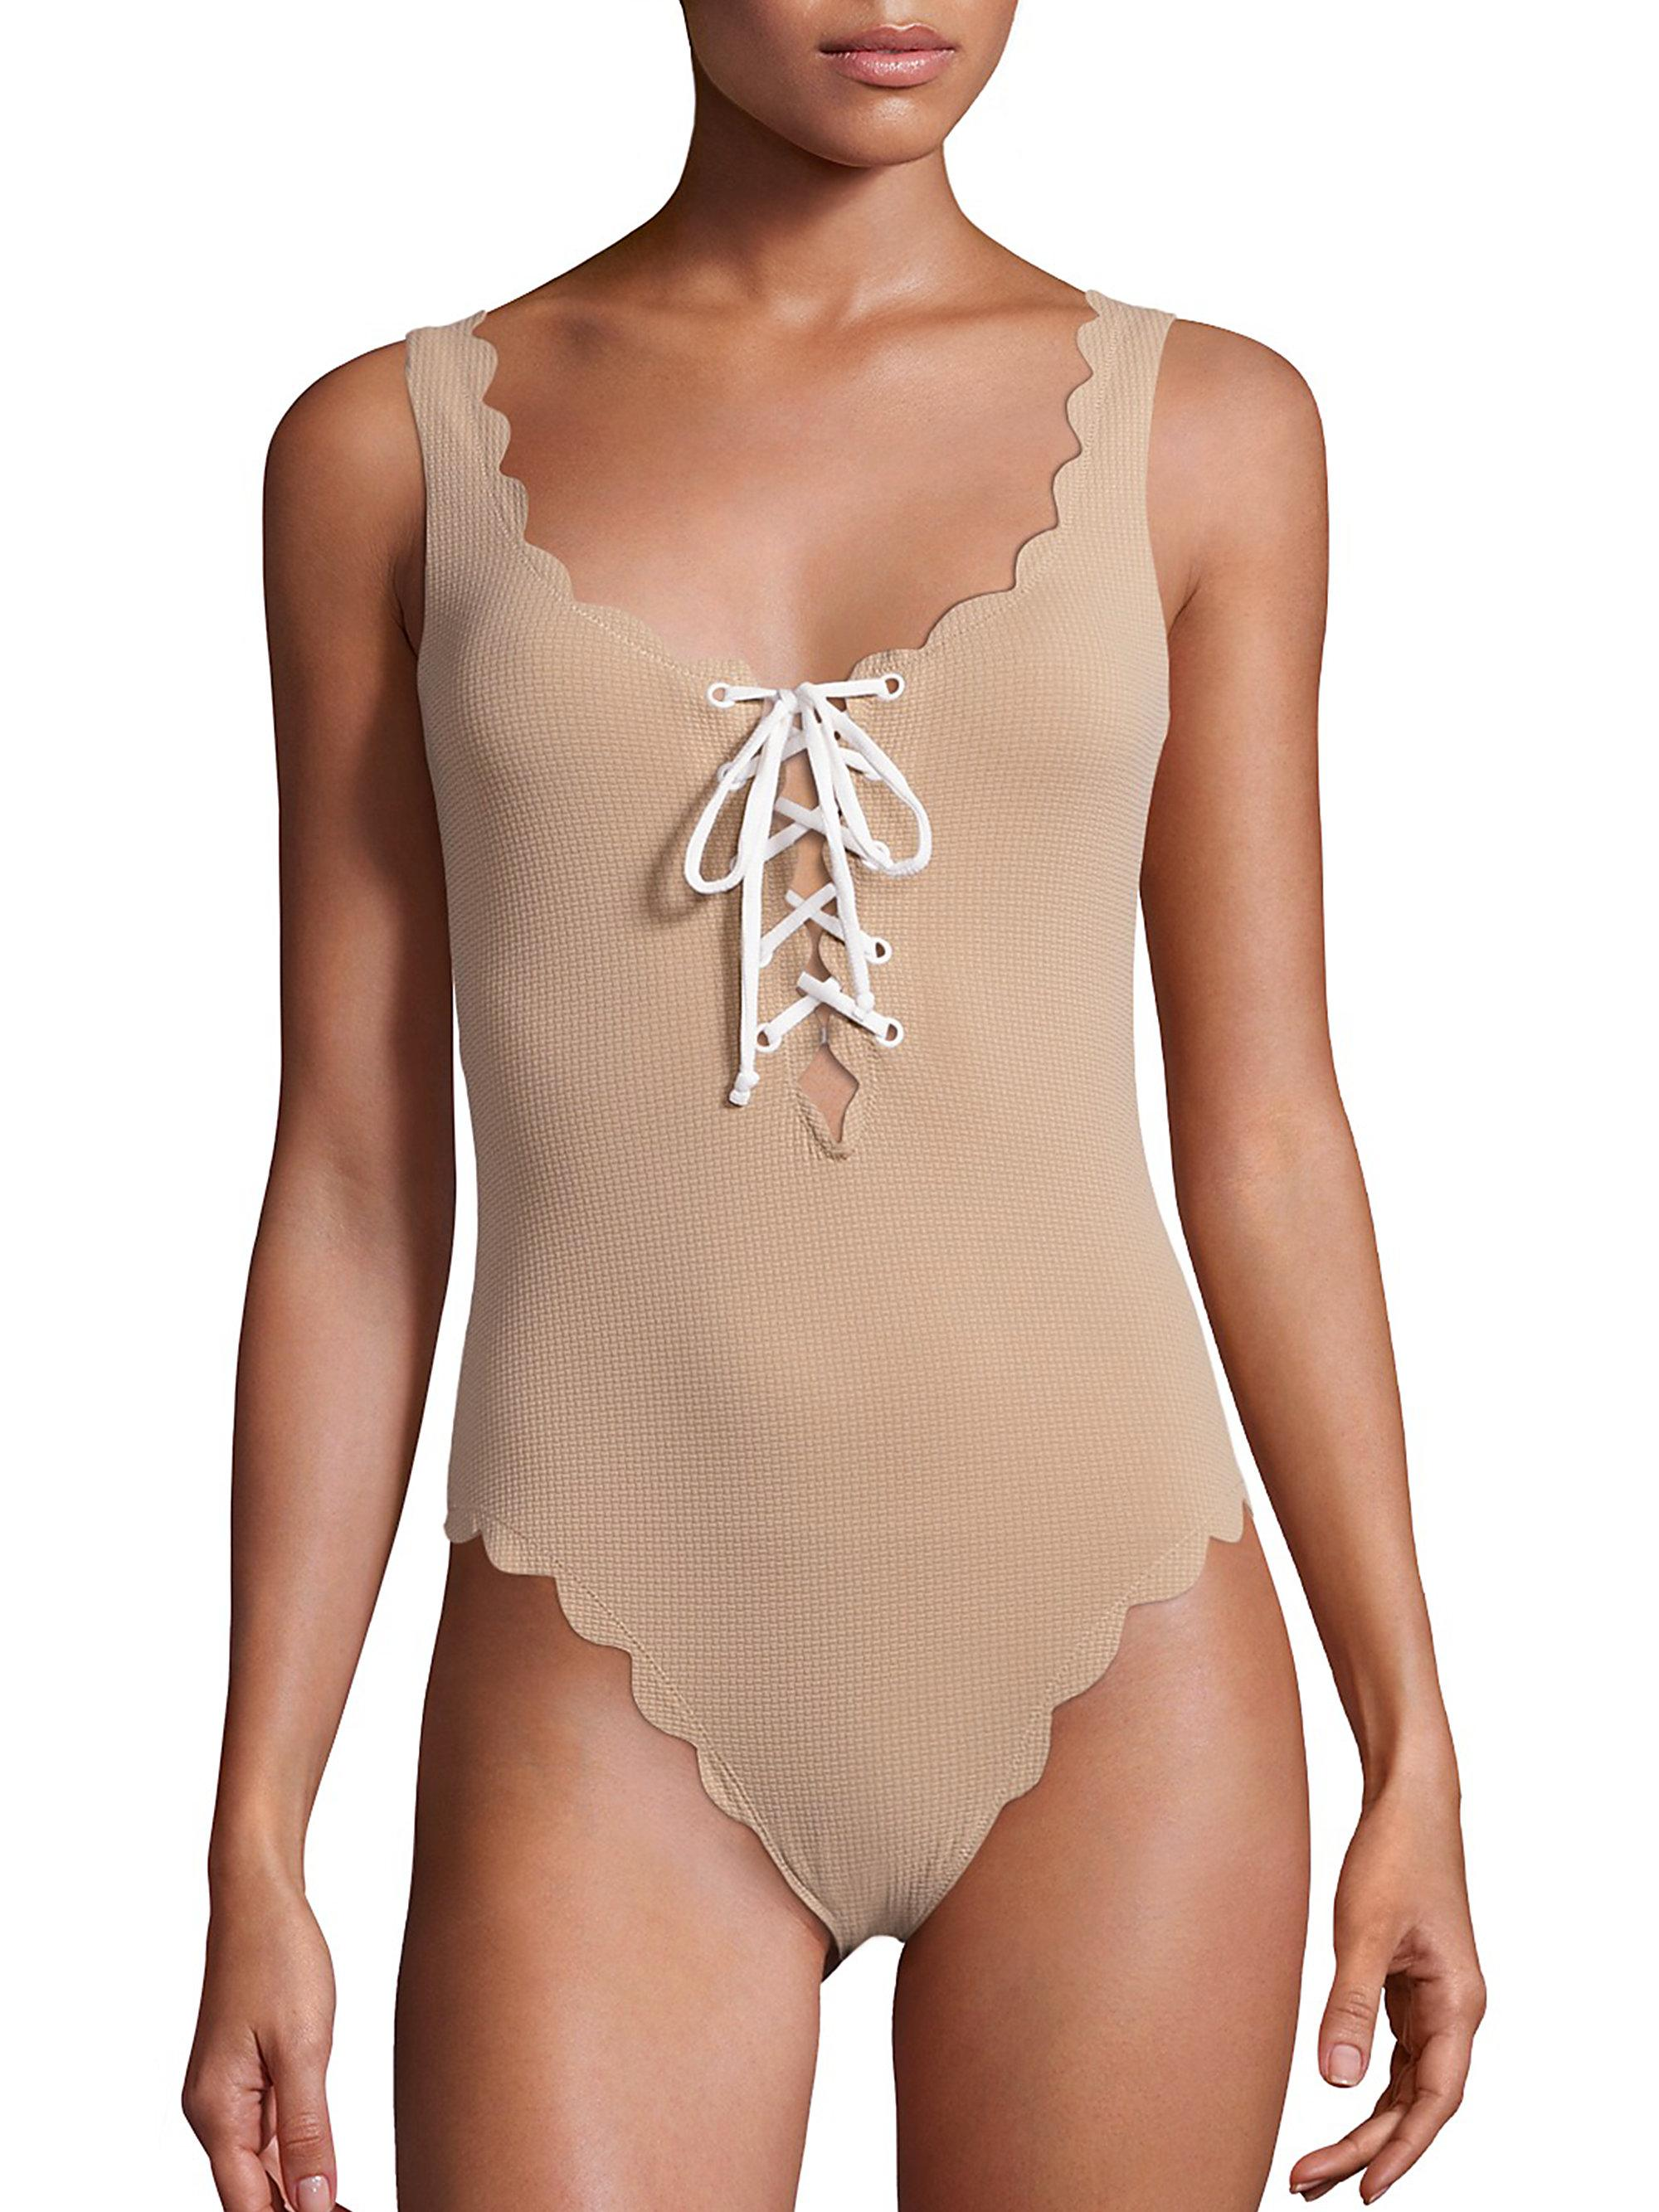 0e7589026370a Marysia Swim Palm Springs One-piece Textured Lace-up Maillot in ...